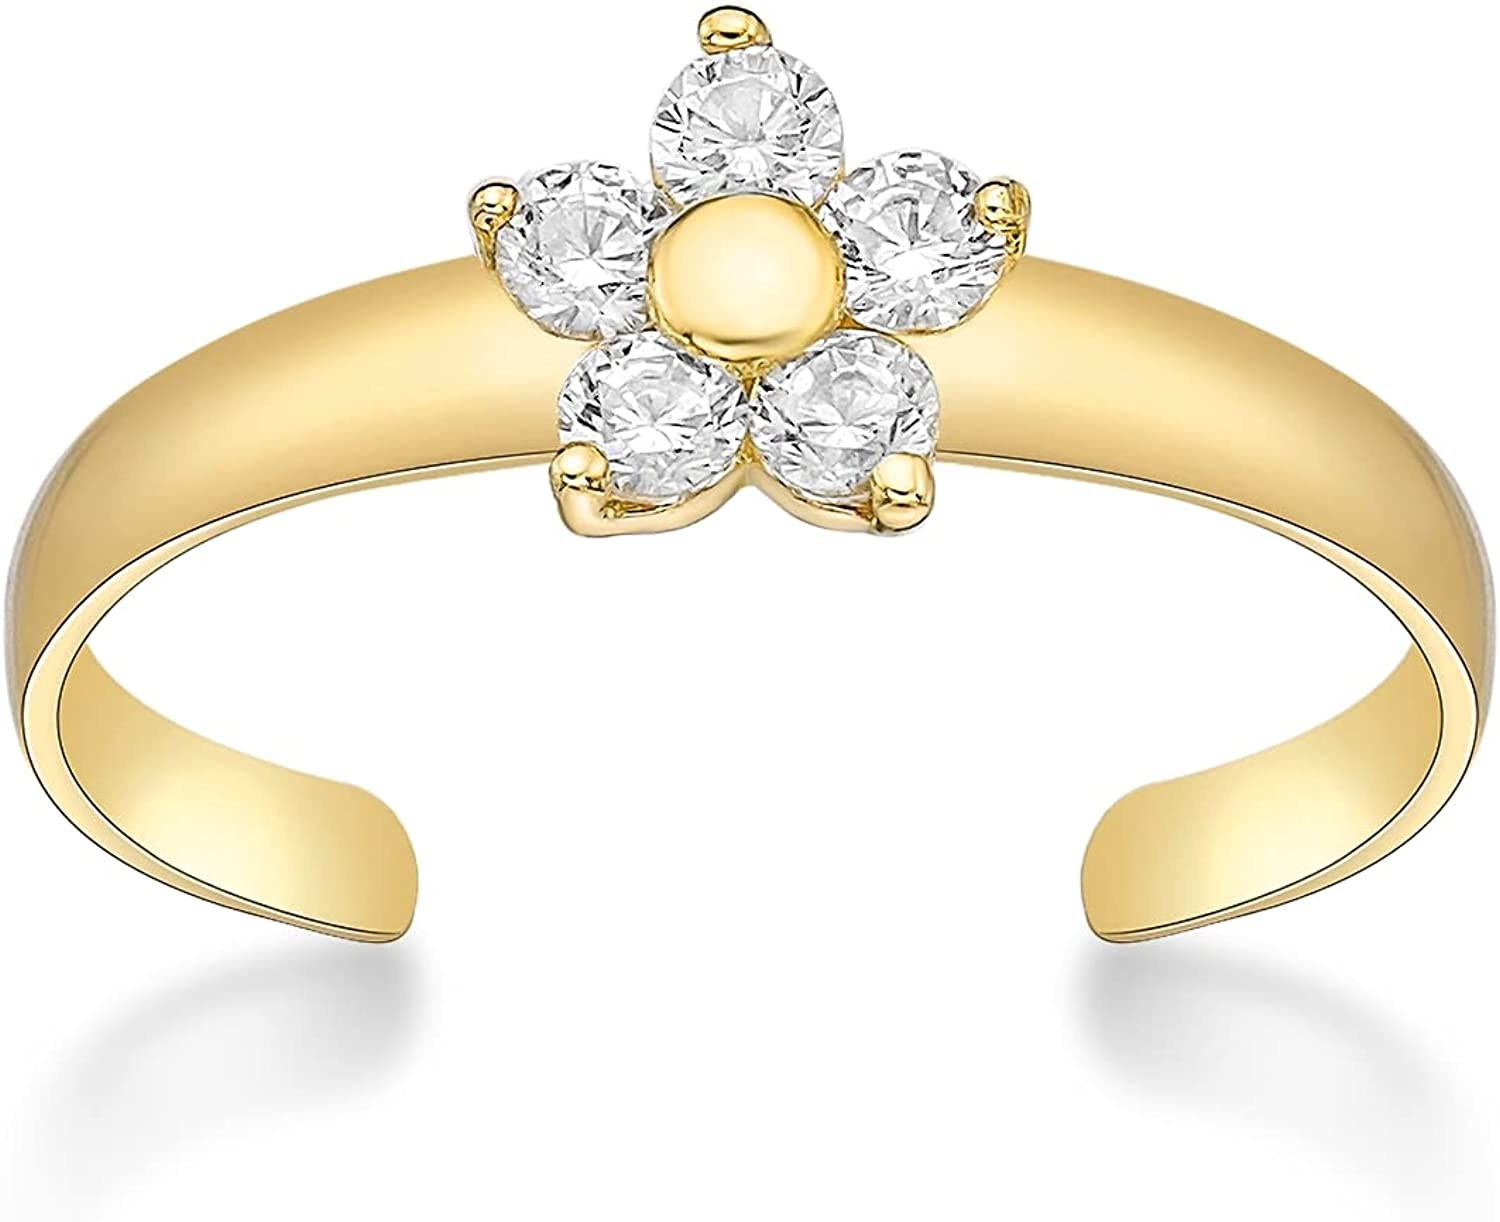 Cubic Zirconia Adjustable Flower Toe Ring in 10k Yellow Gold 6 MM Wide by Lavari Jewelers